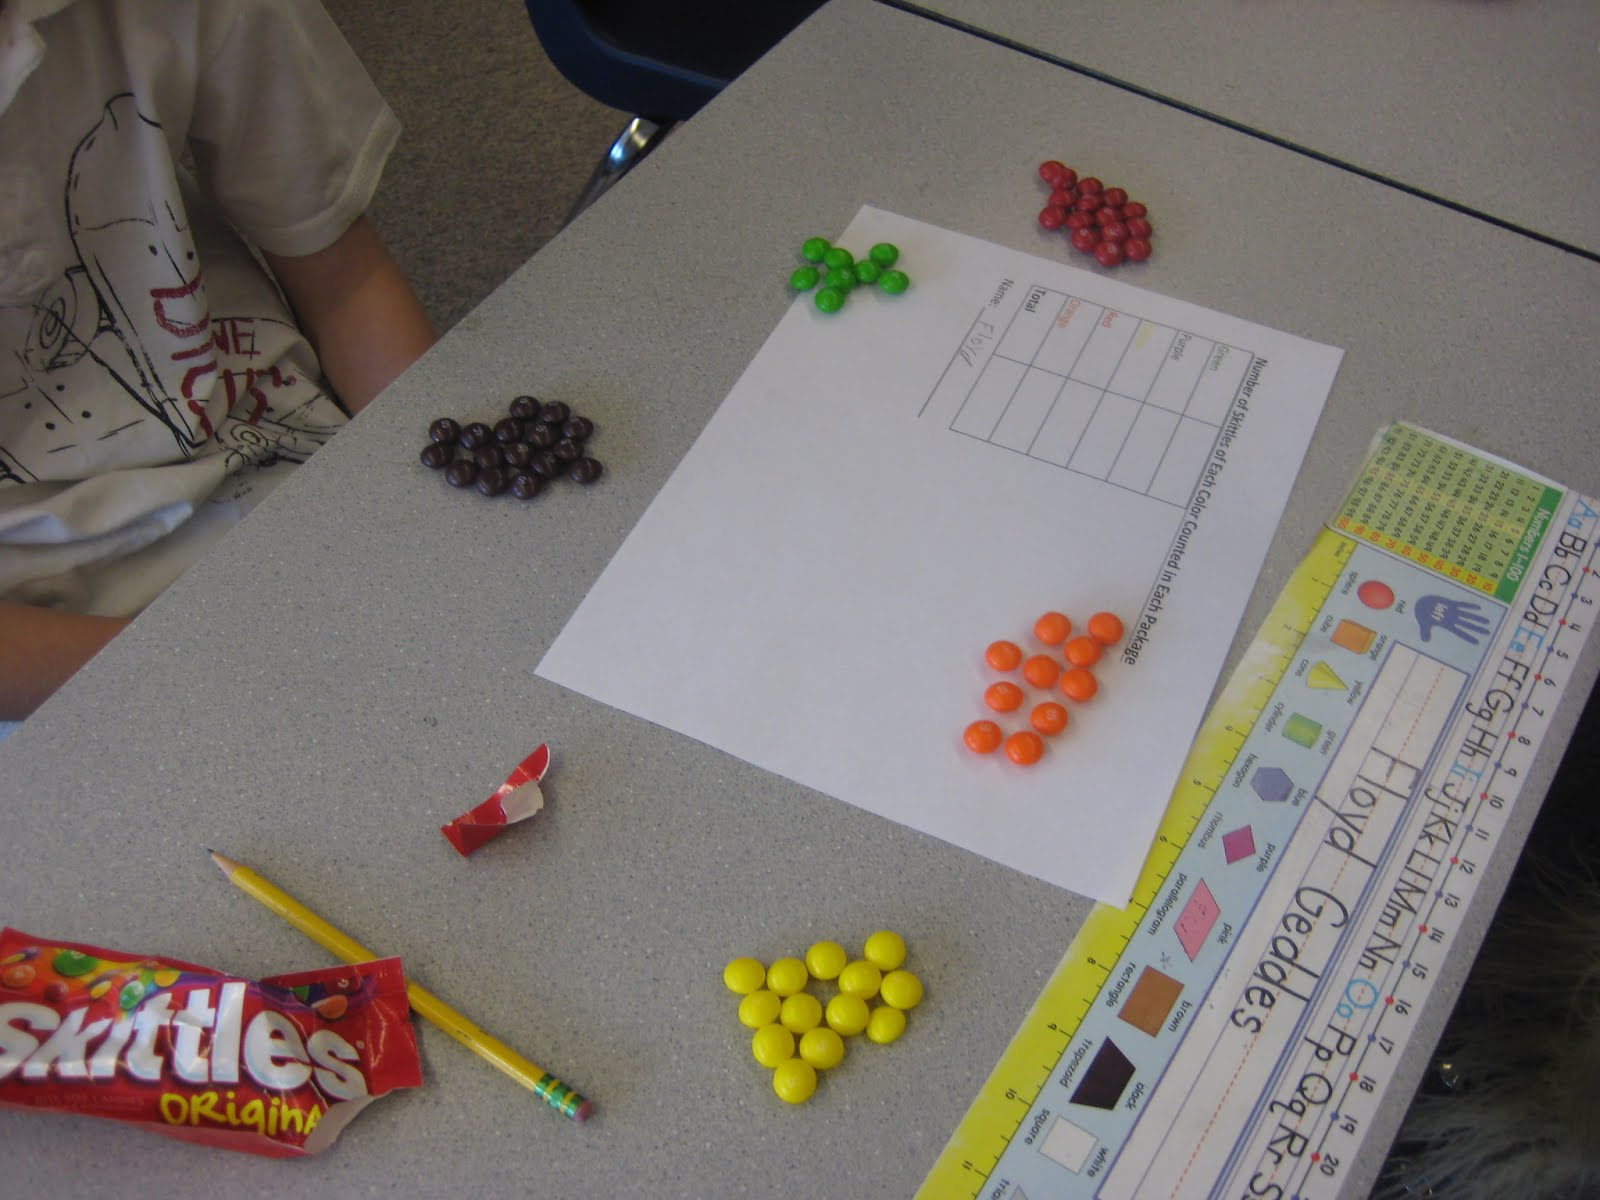 Skittles Science Projects http://tullistimes.blogspot.com/2012/01/science-fair-project.html